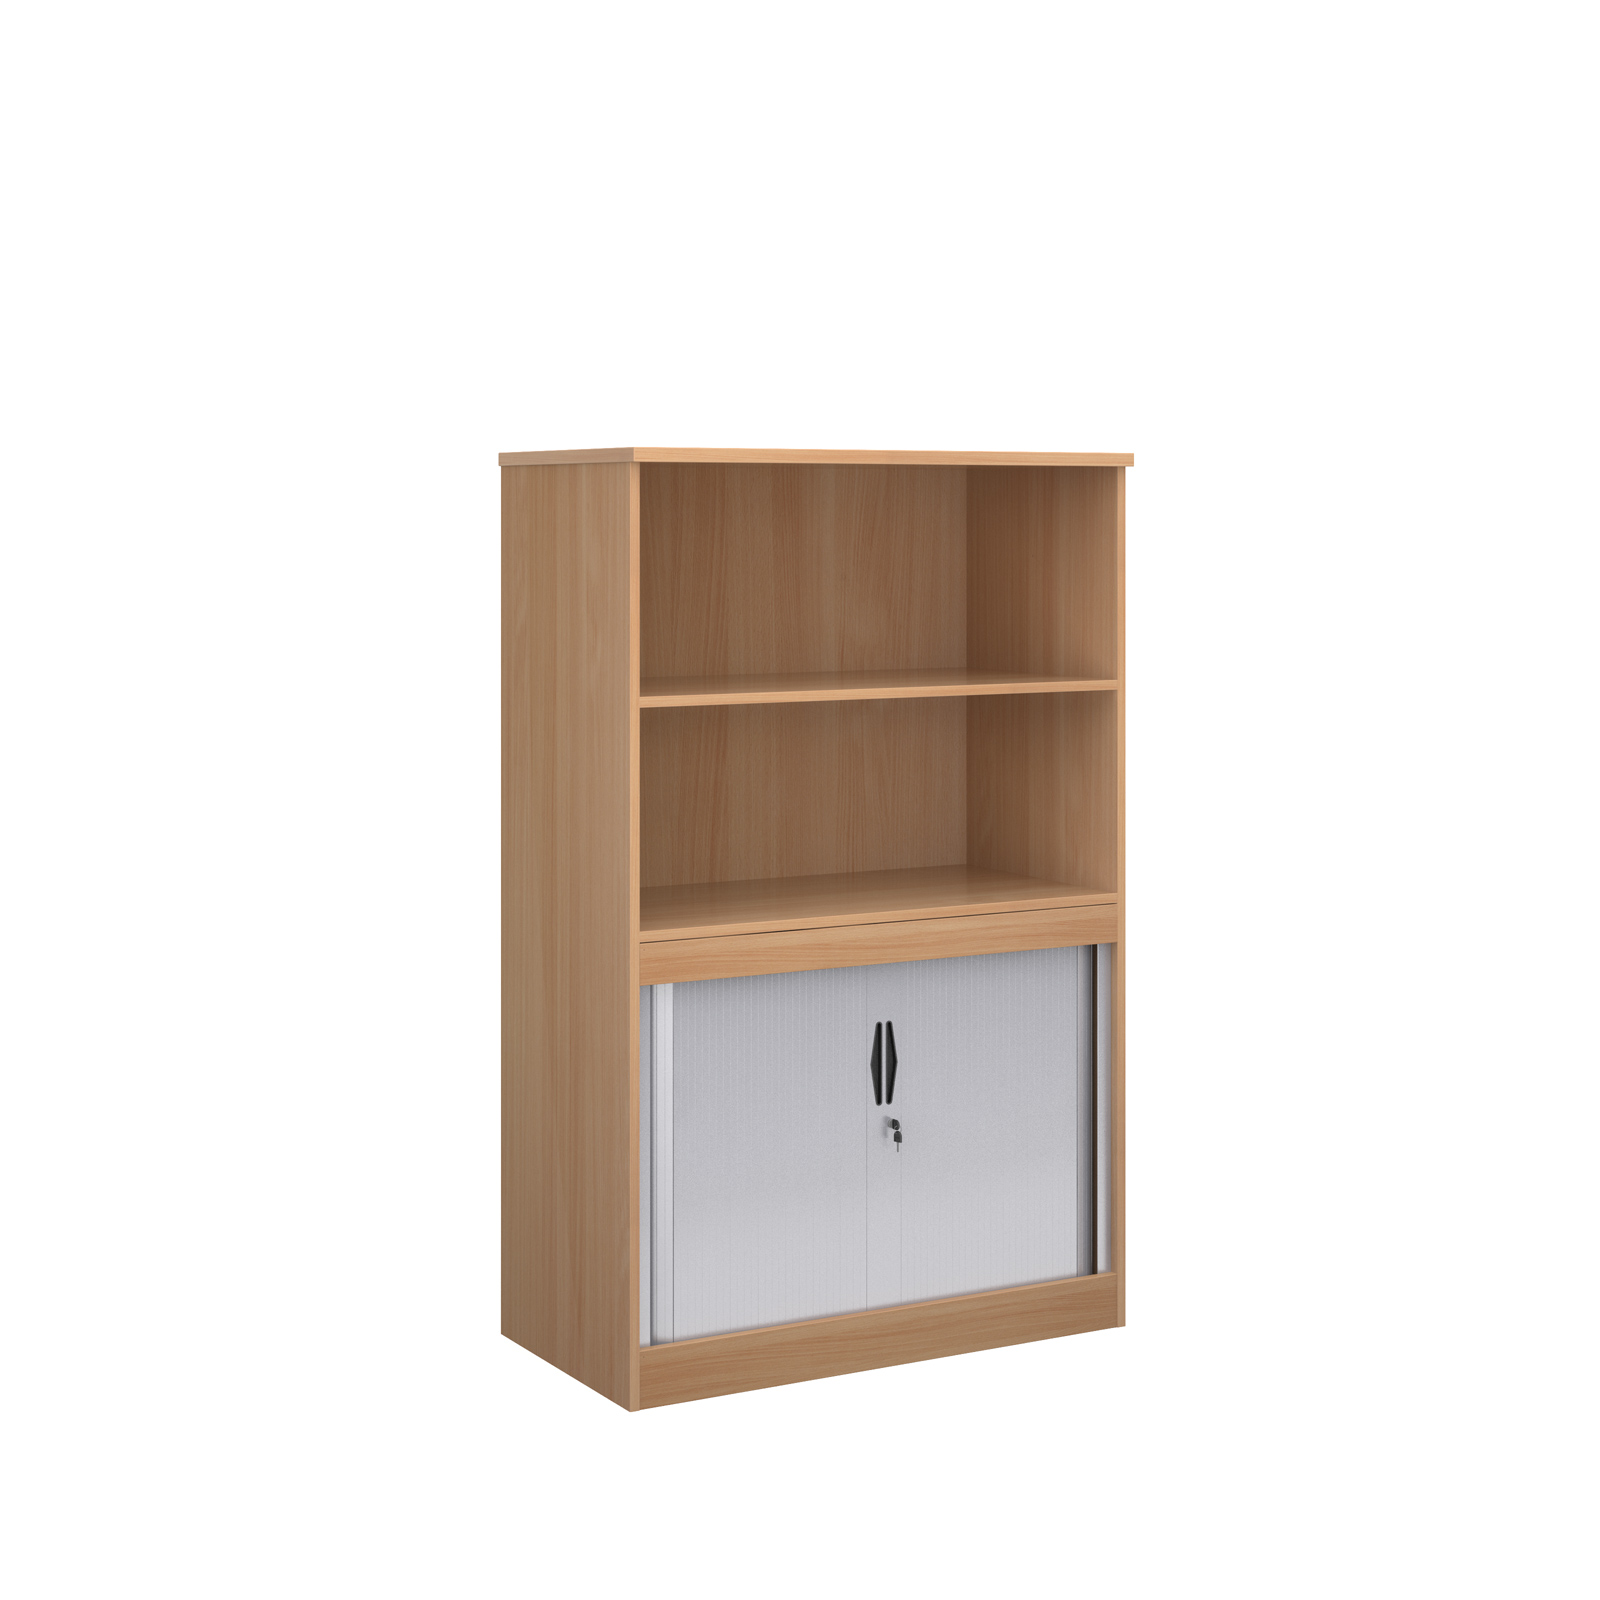 Systems combi unit with tambour and open top